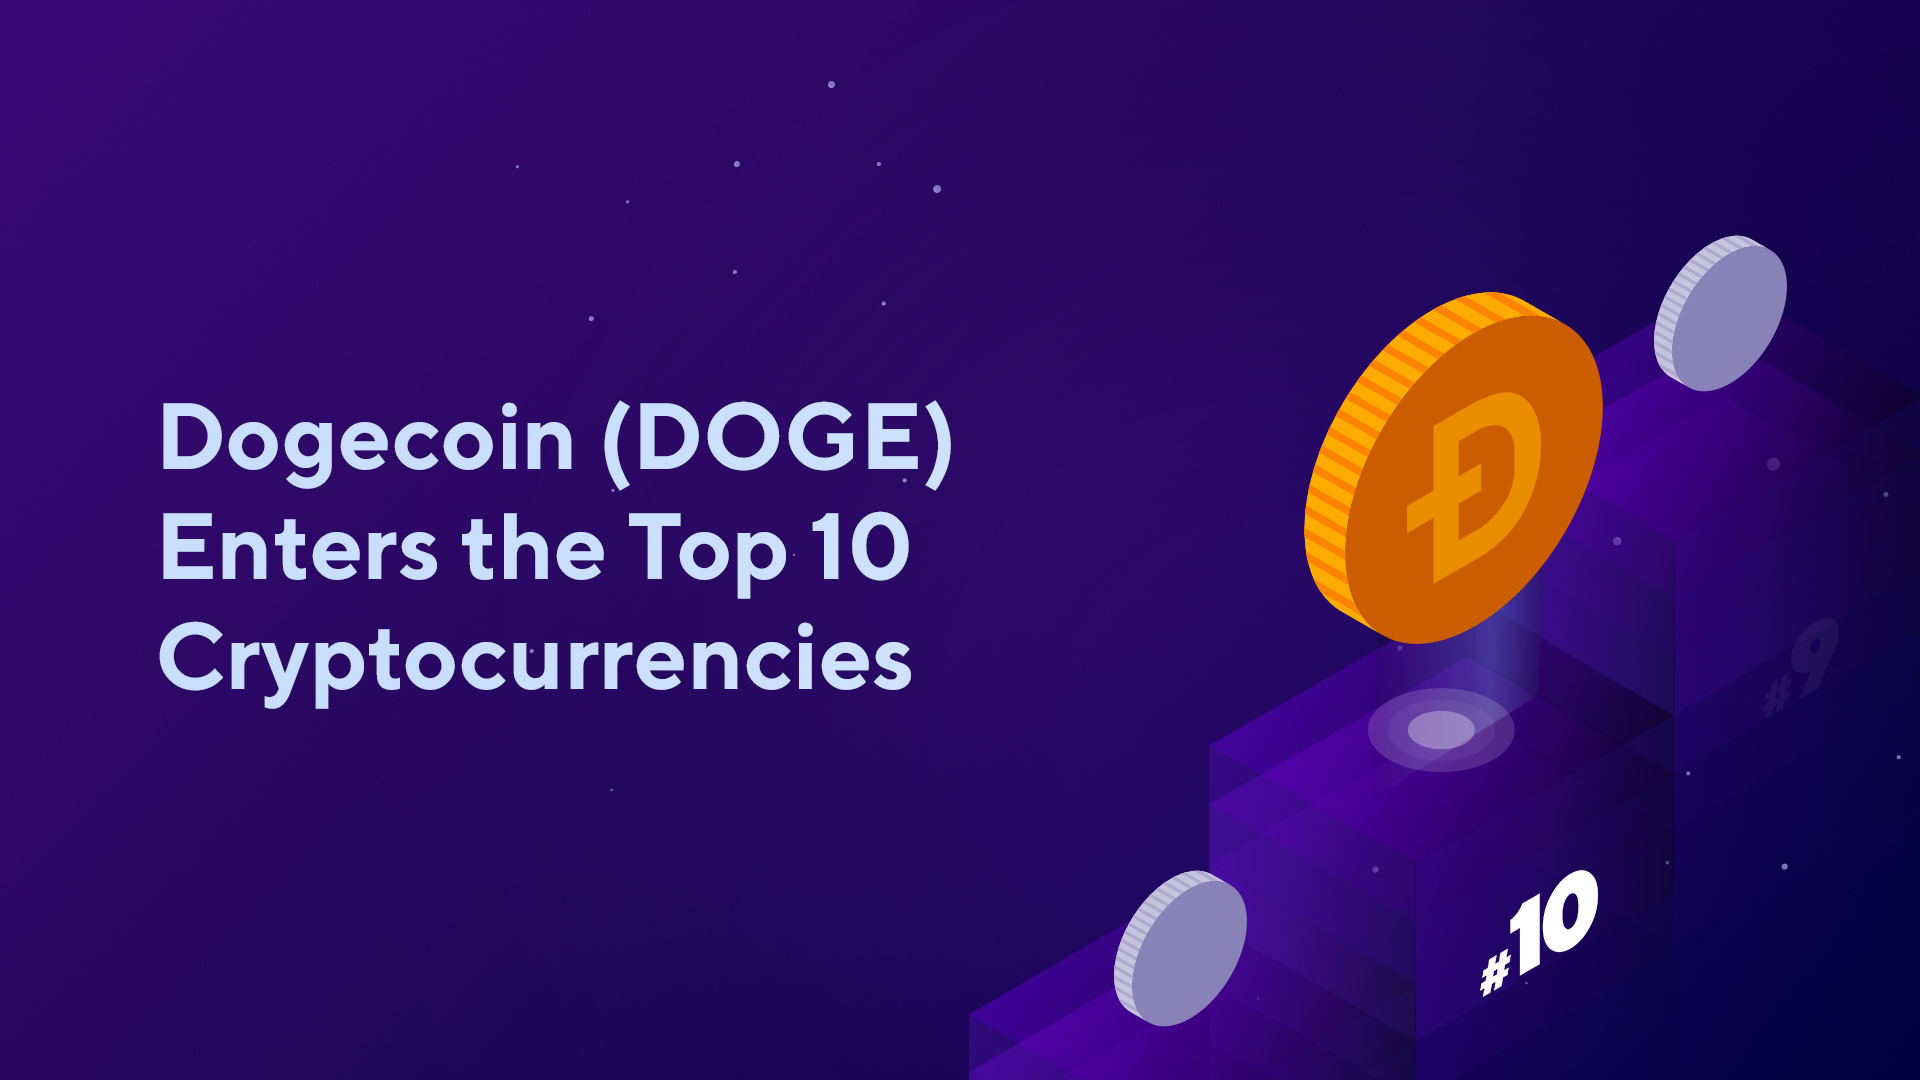 Dogecoin (DOGE) Enters the Top 10 Cryptocurrencies